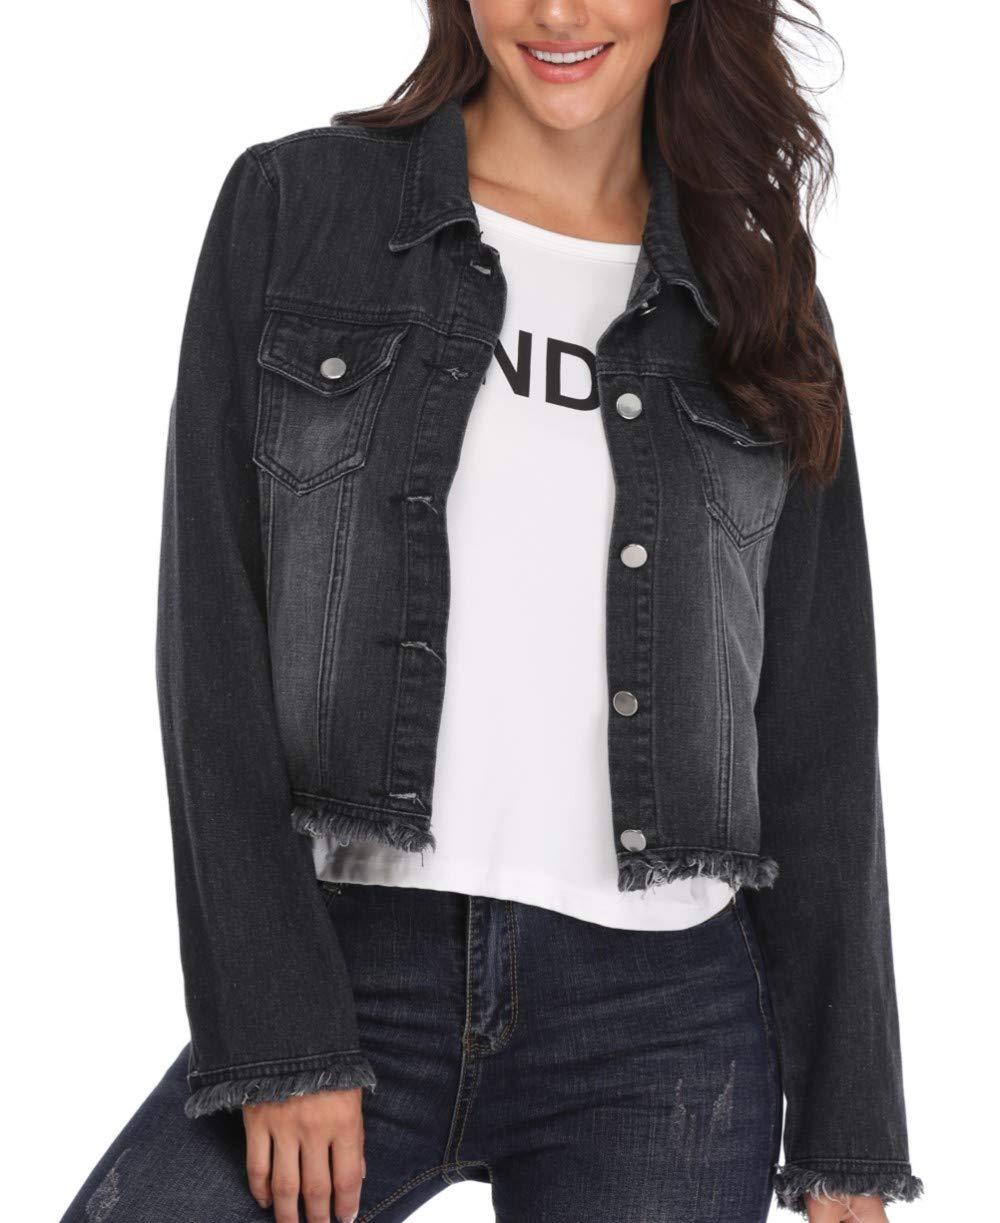 Denim Jackets for Women Button Down Turn Down Collar Jean Coats with Pockets